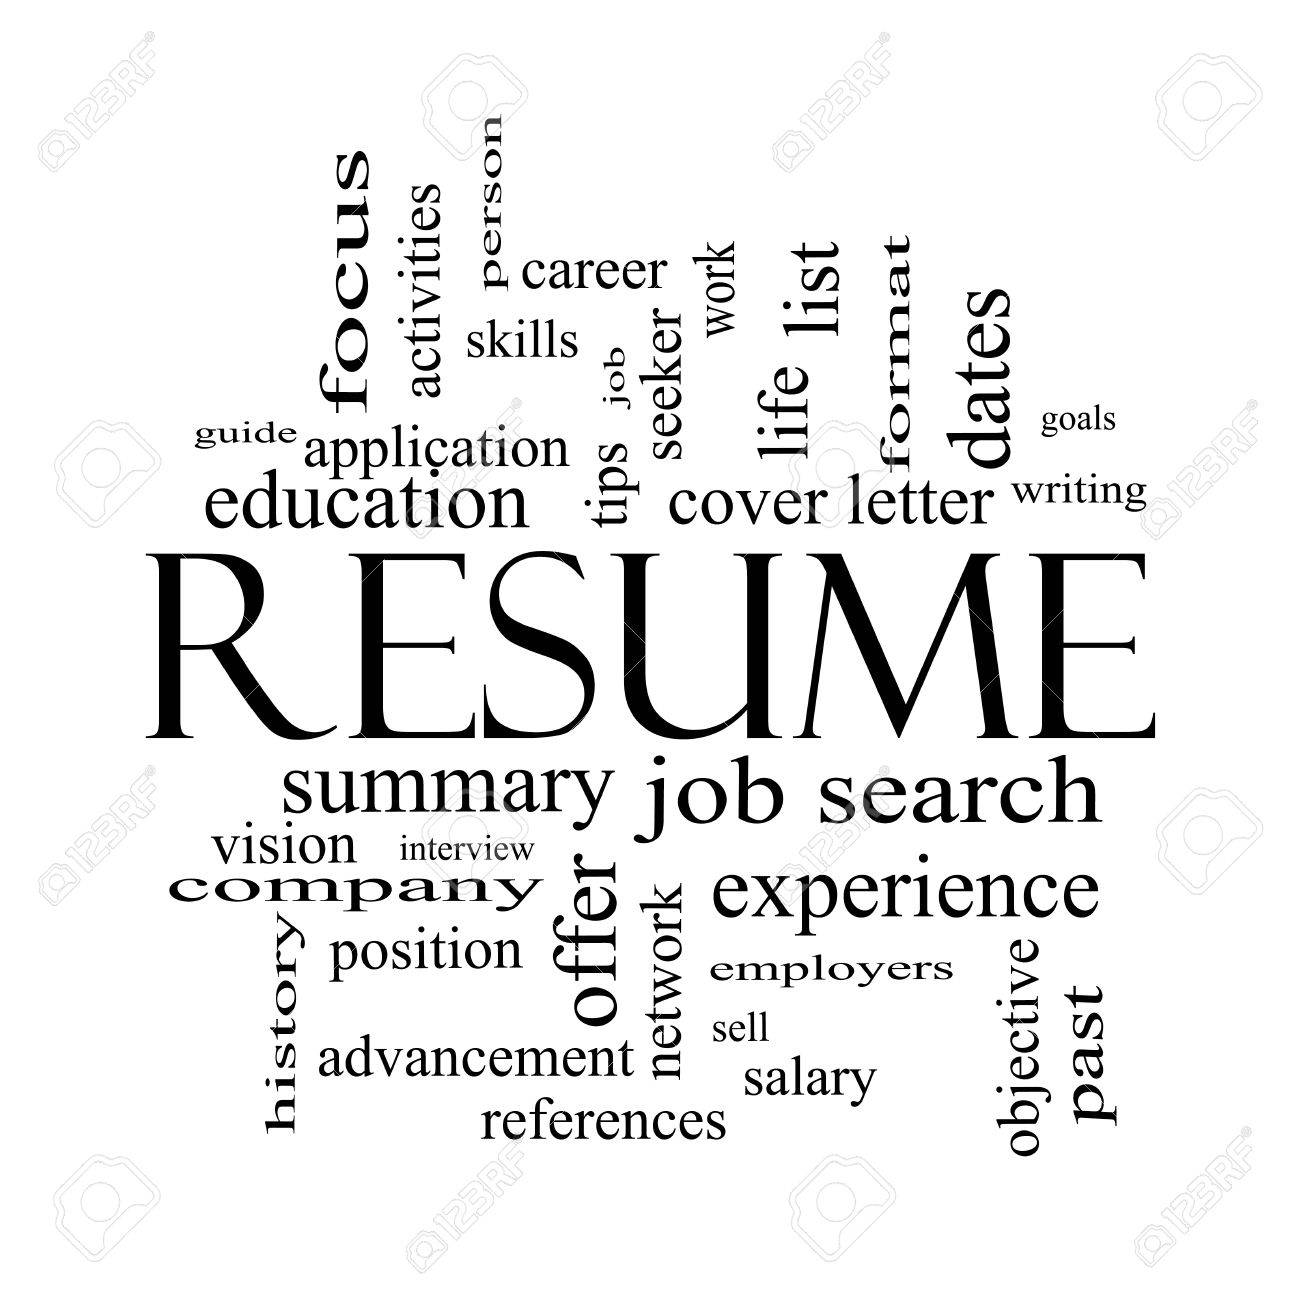 Resume Word Cloud Concept In Black And White With Great Terms – Resume in Word